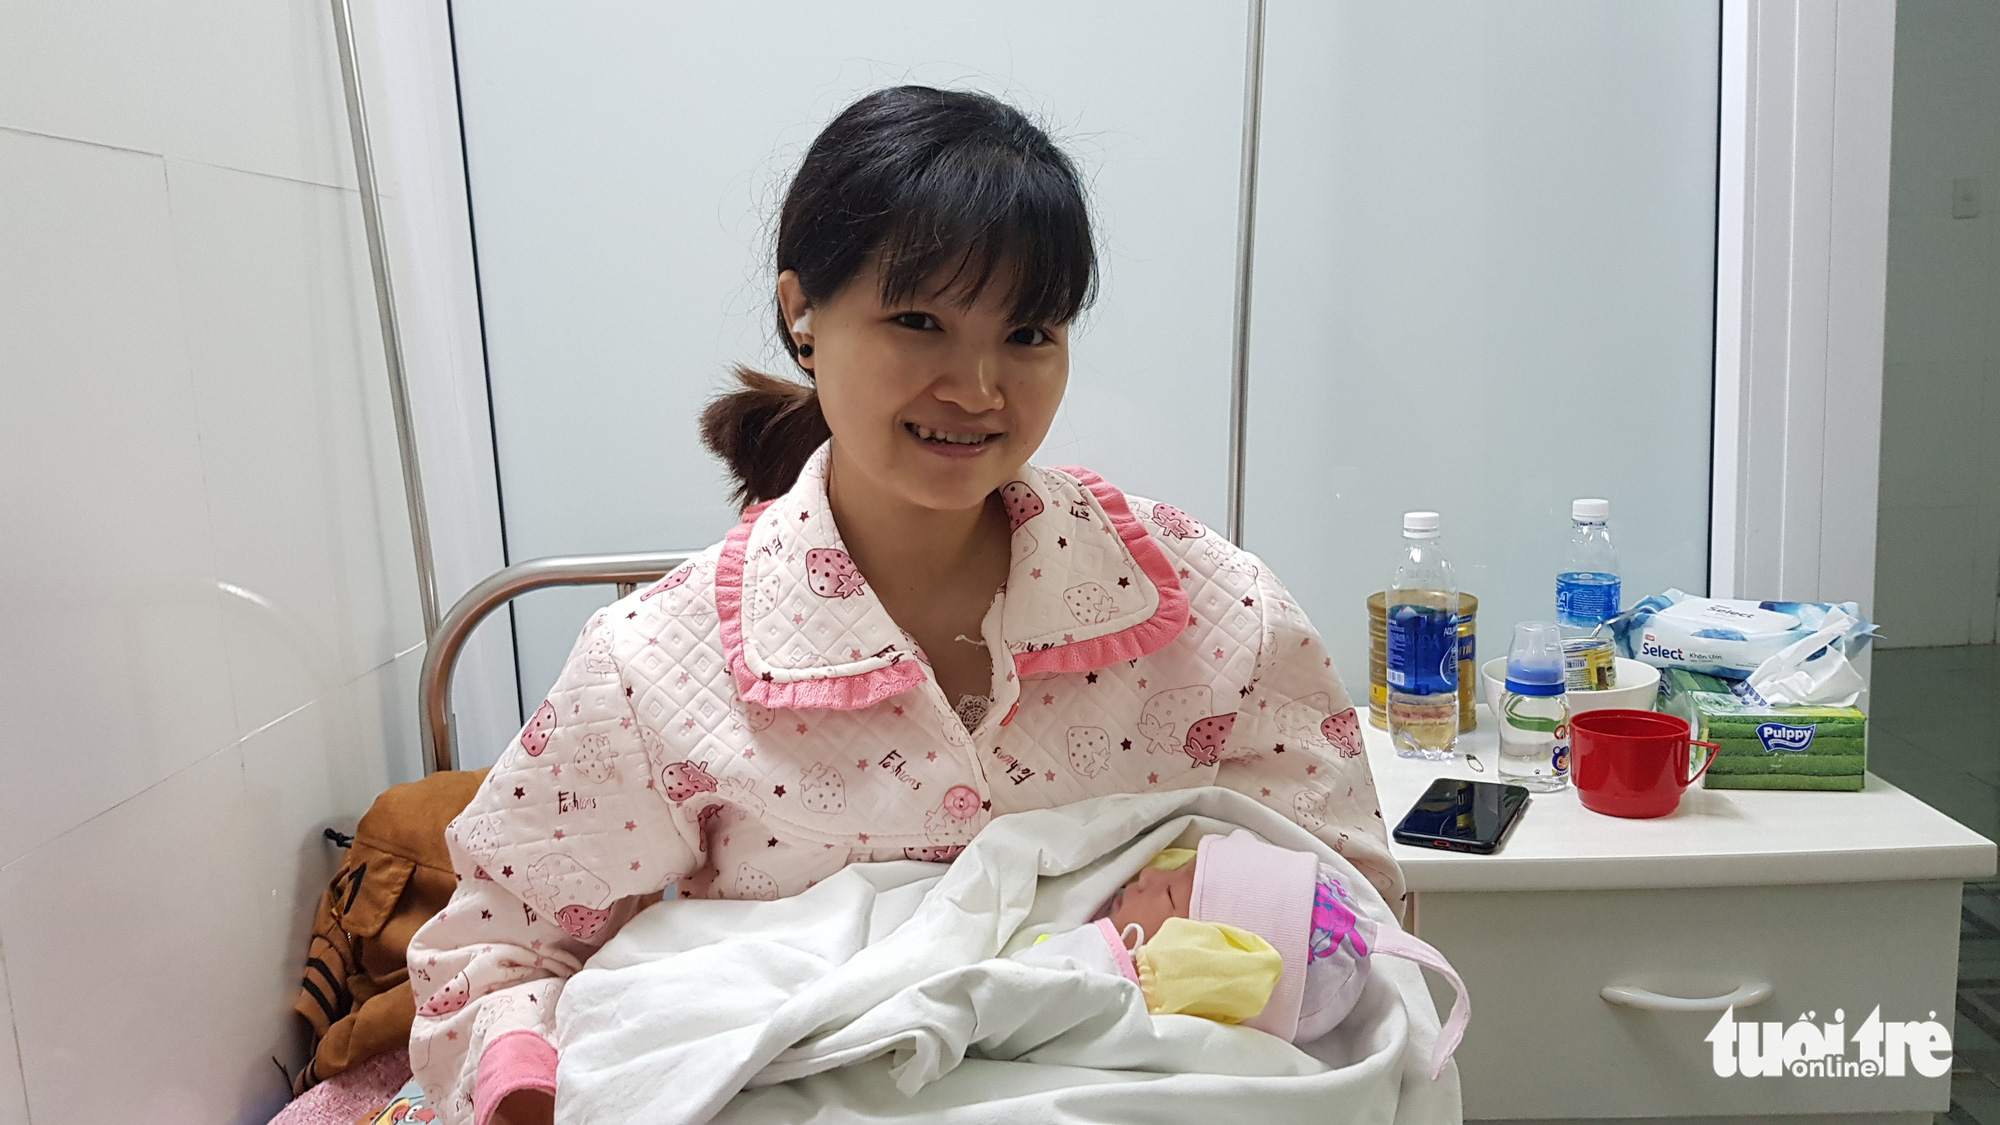 Lang Thi Mau and her newborn are seen at Hue Transport Hospital in Thue Thien – Hue Province, Vietnam in this photo supplied by the train crew who helped her deliver the baby.